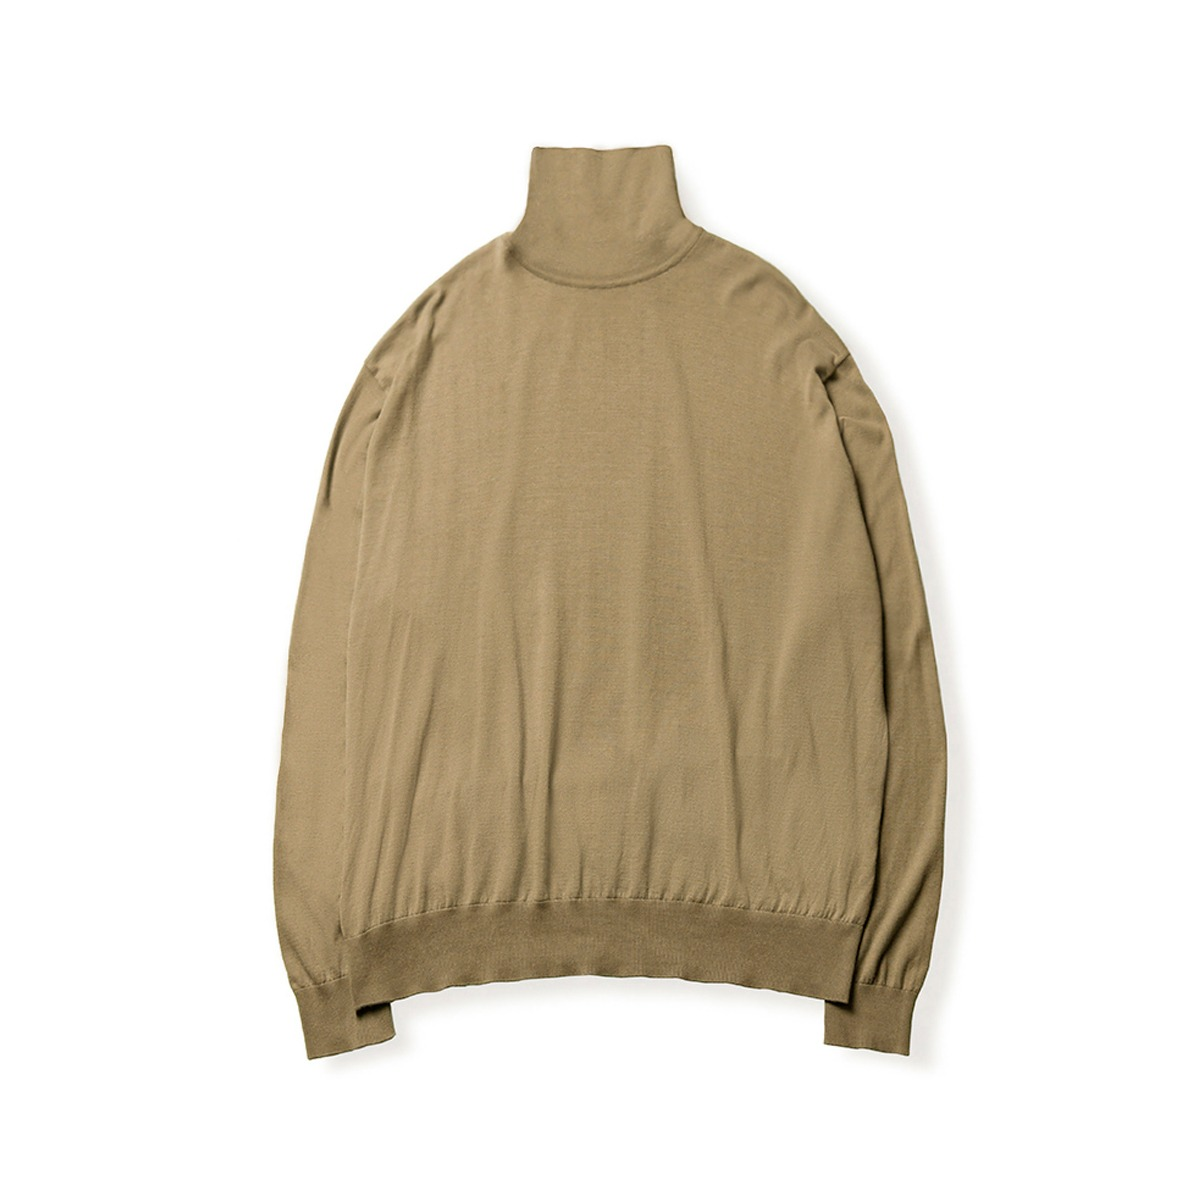 [BROWNYARD] HIGH GAUGE TURTLENECK 'DARK BEIGE'